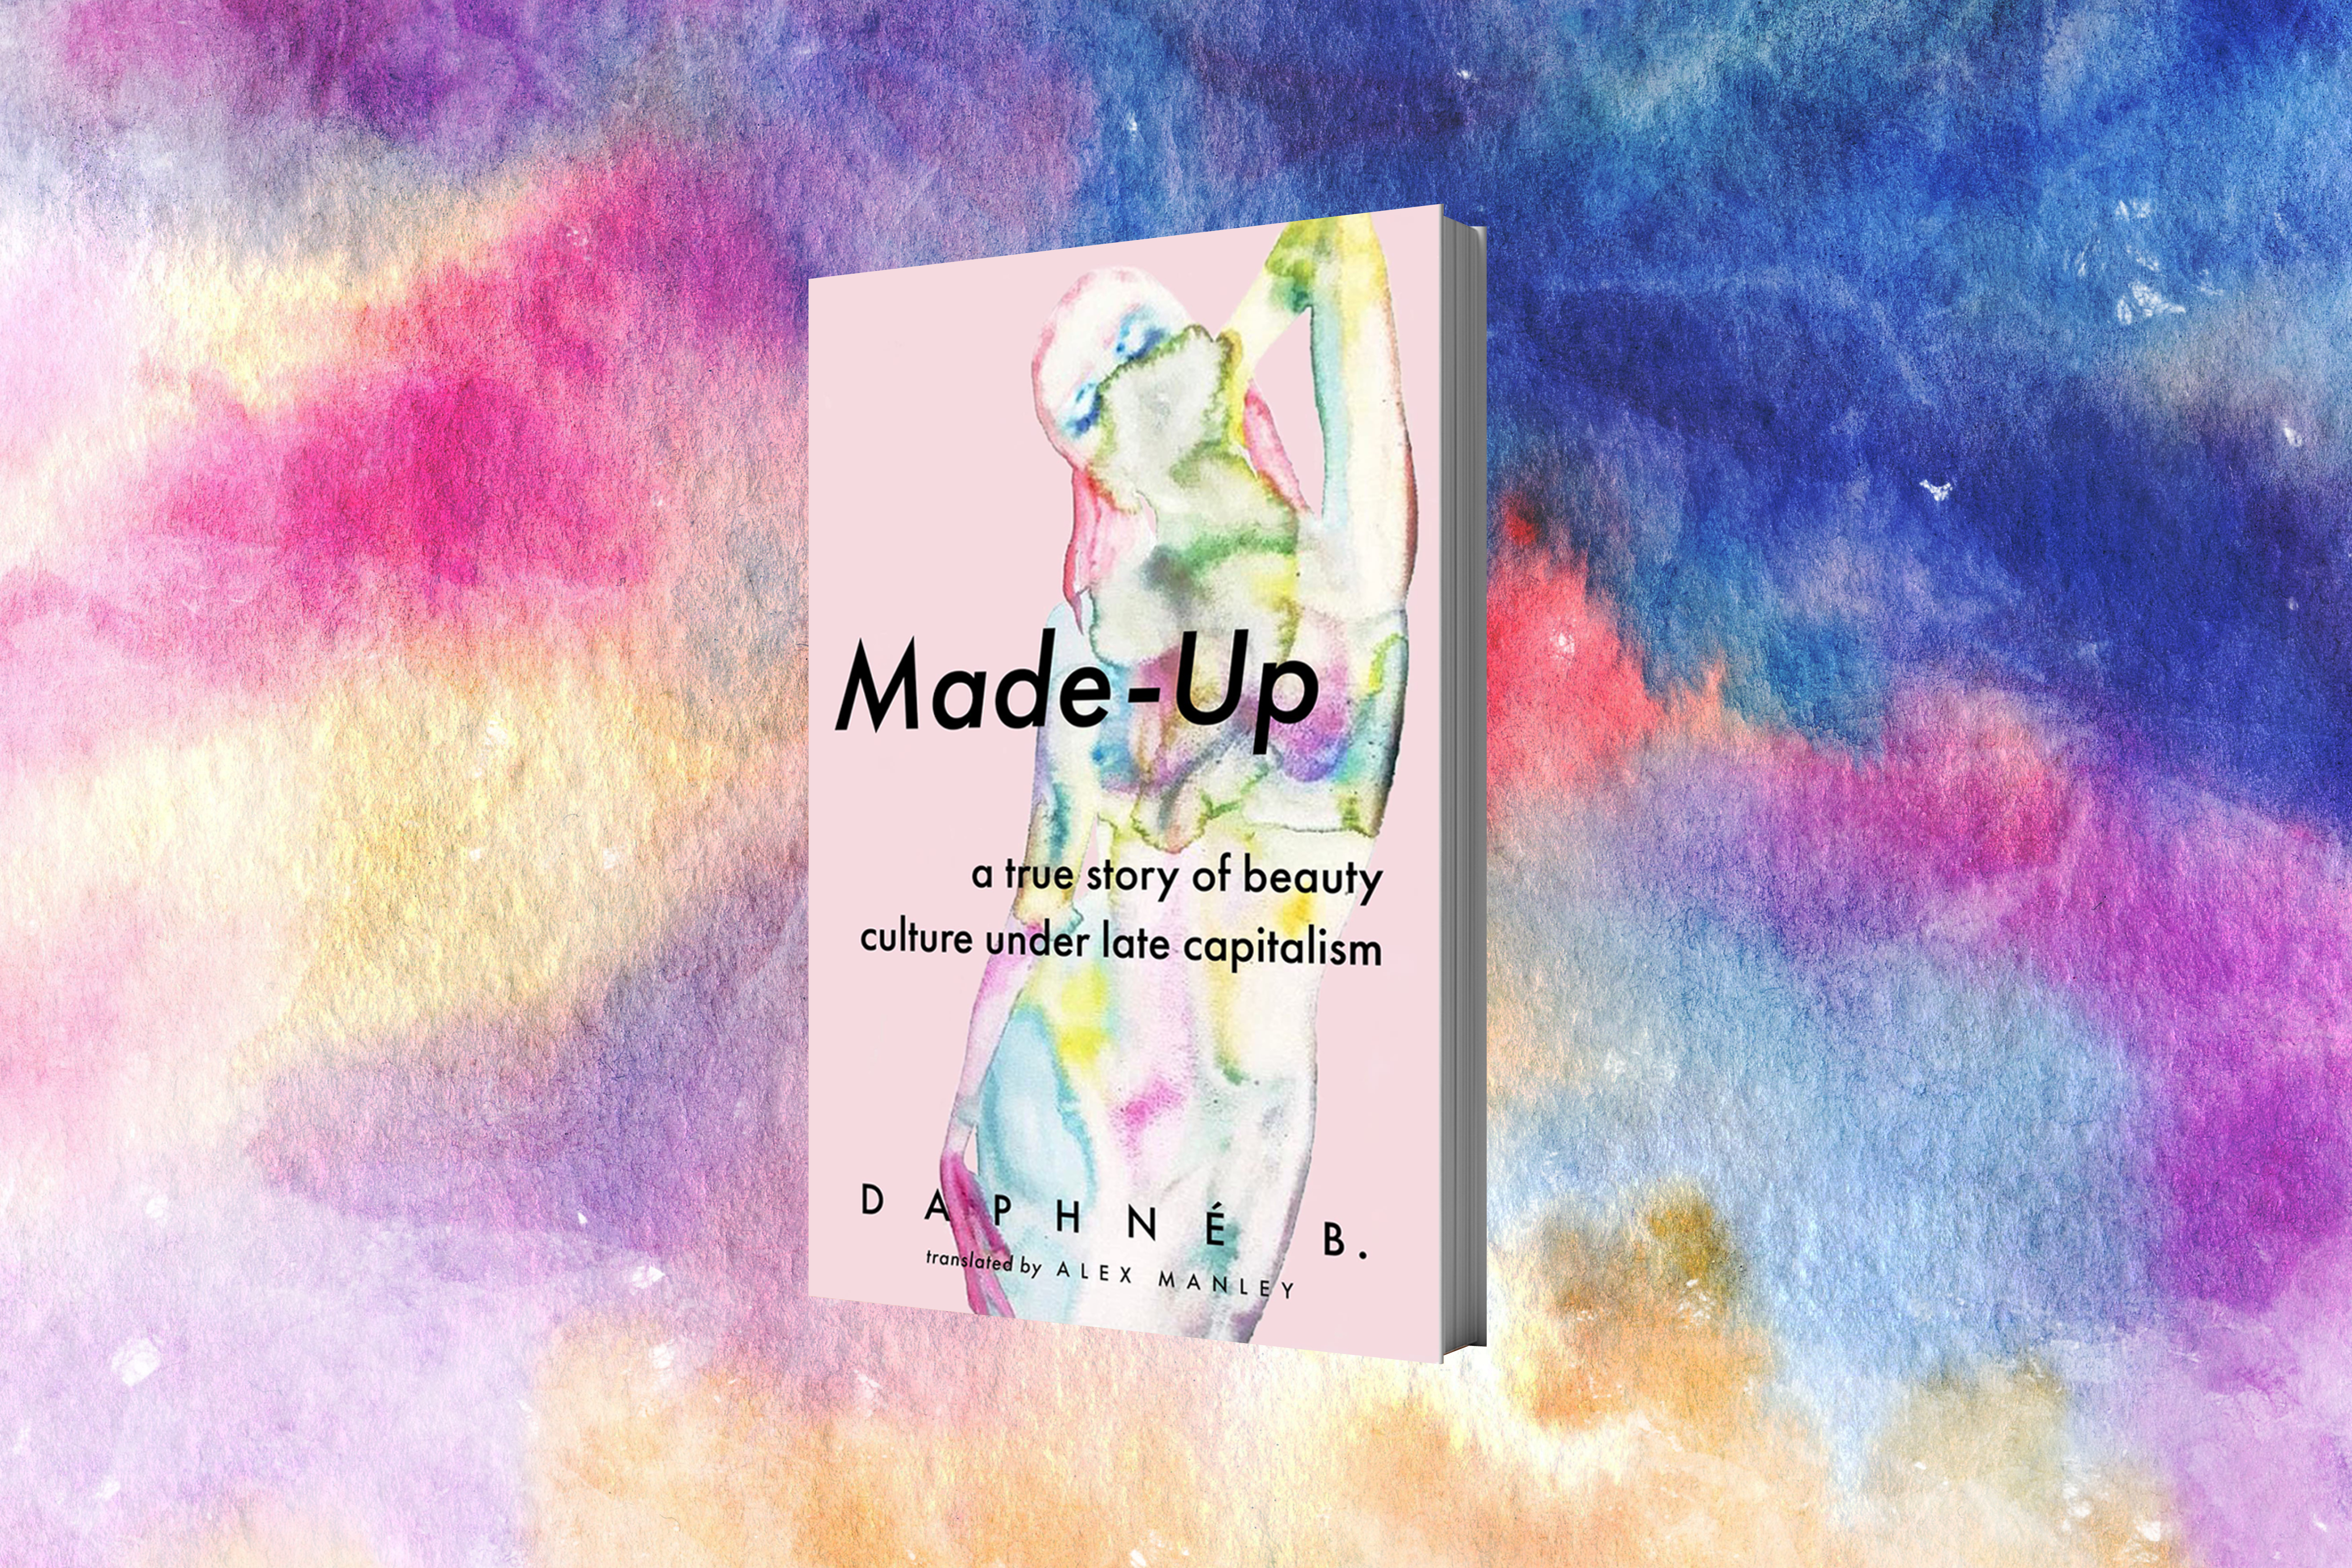 Photograph of the book cover for Made Up by Daphné B., featuring the silhouette of a femme body in pink